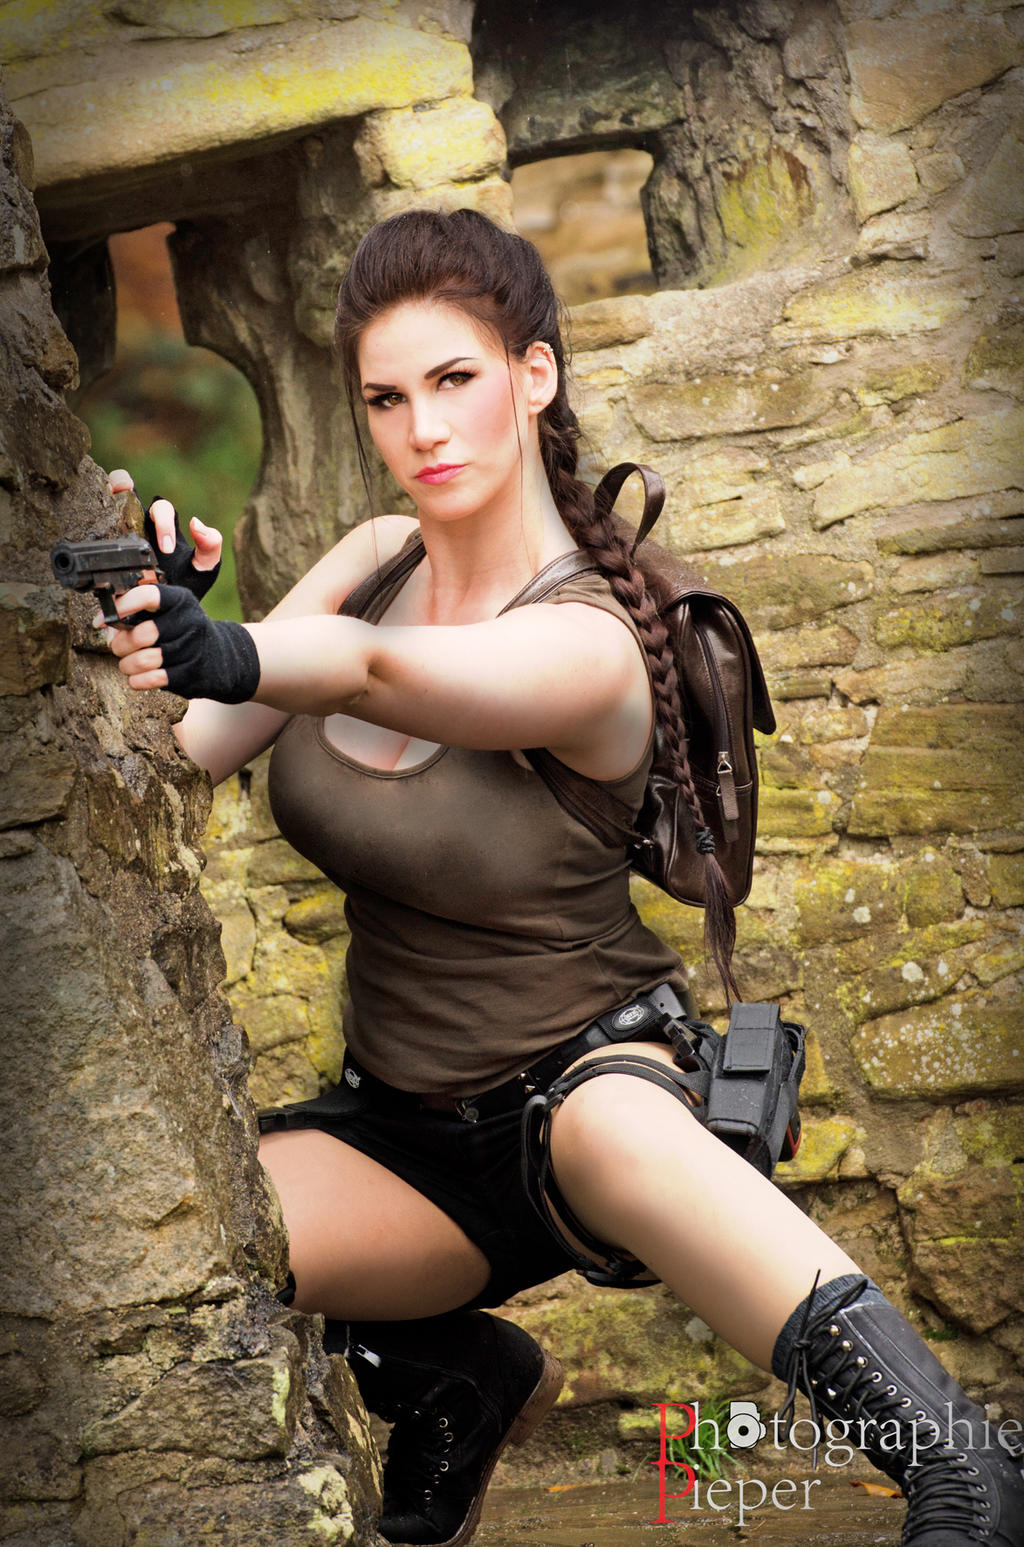 Lara croft as a slave adult images